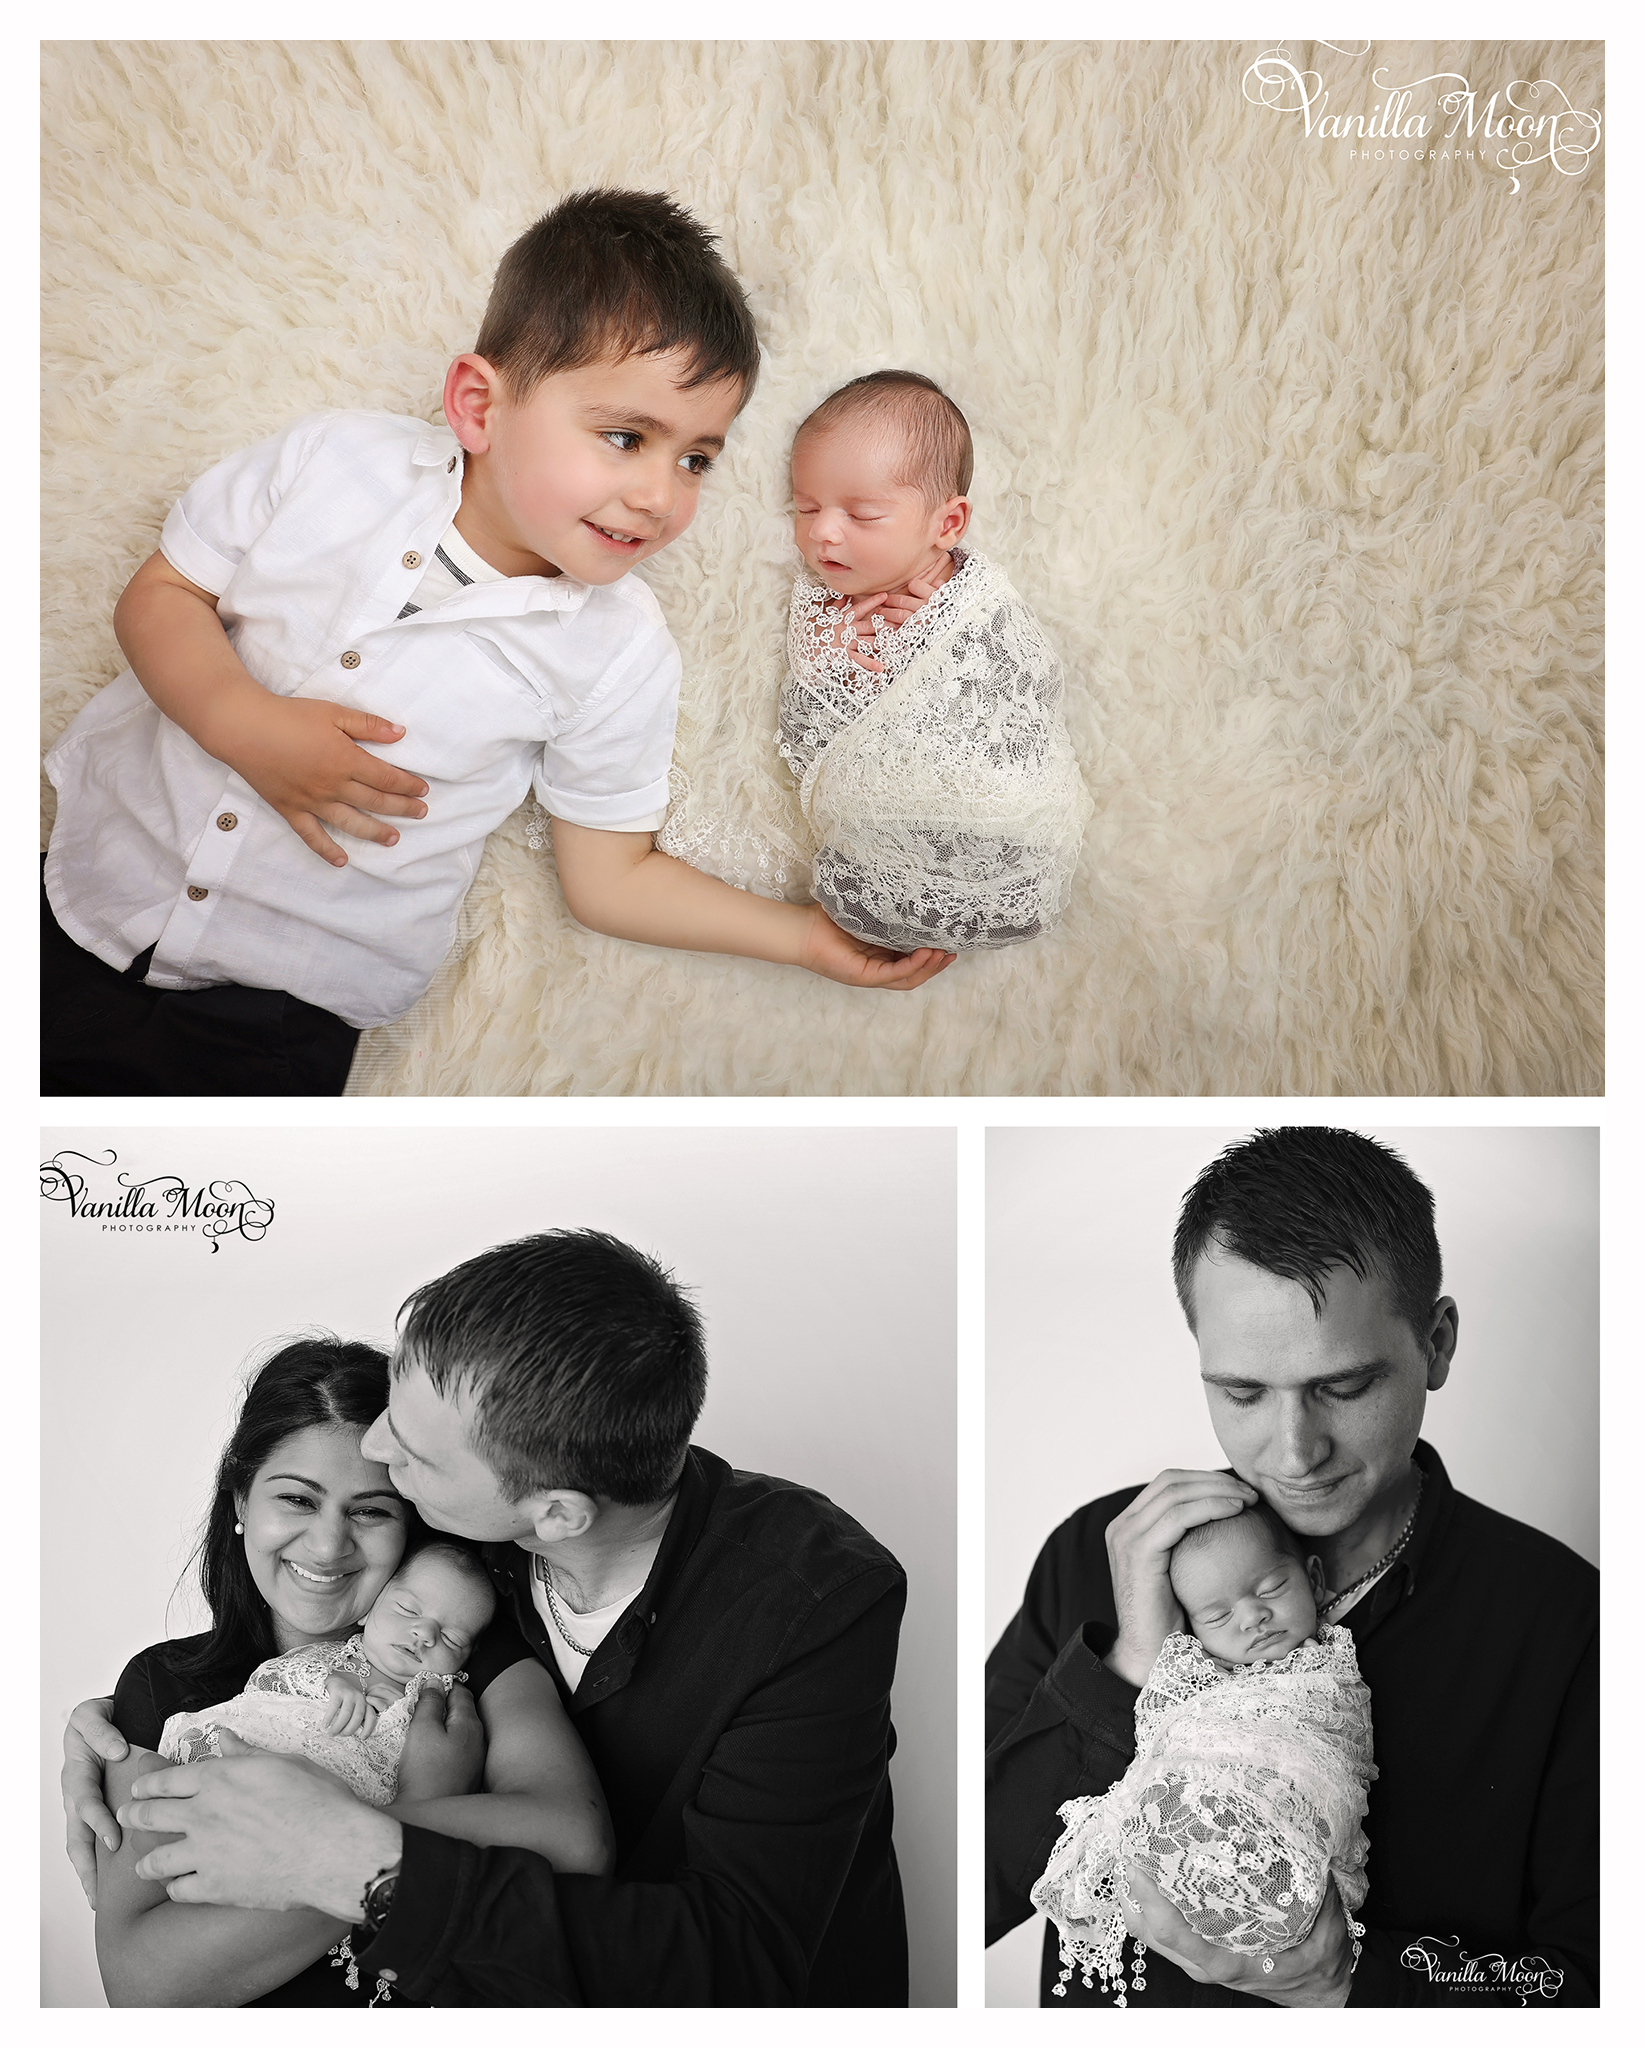 Newborn and family portrait photography